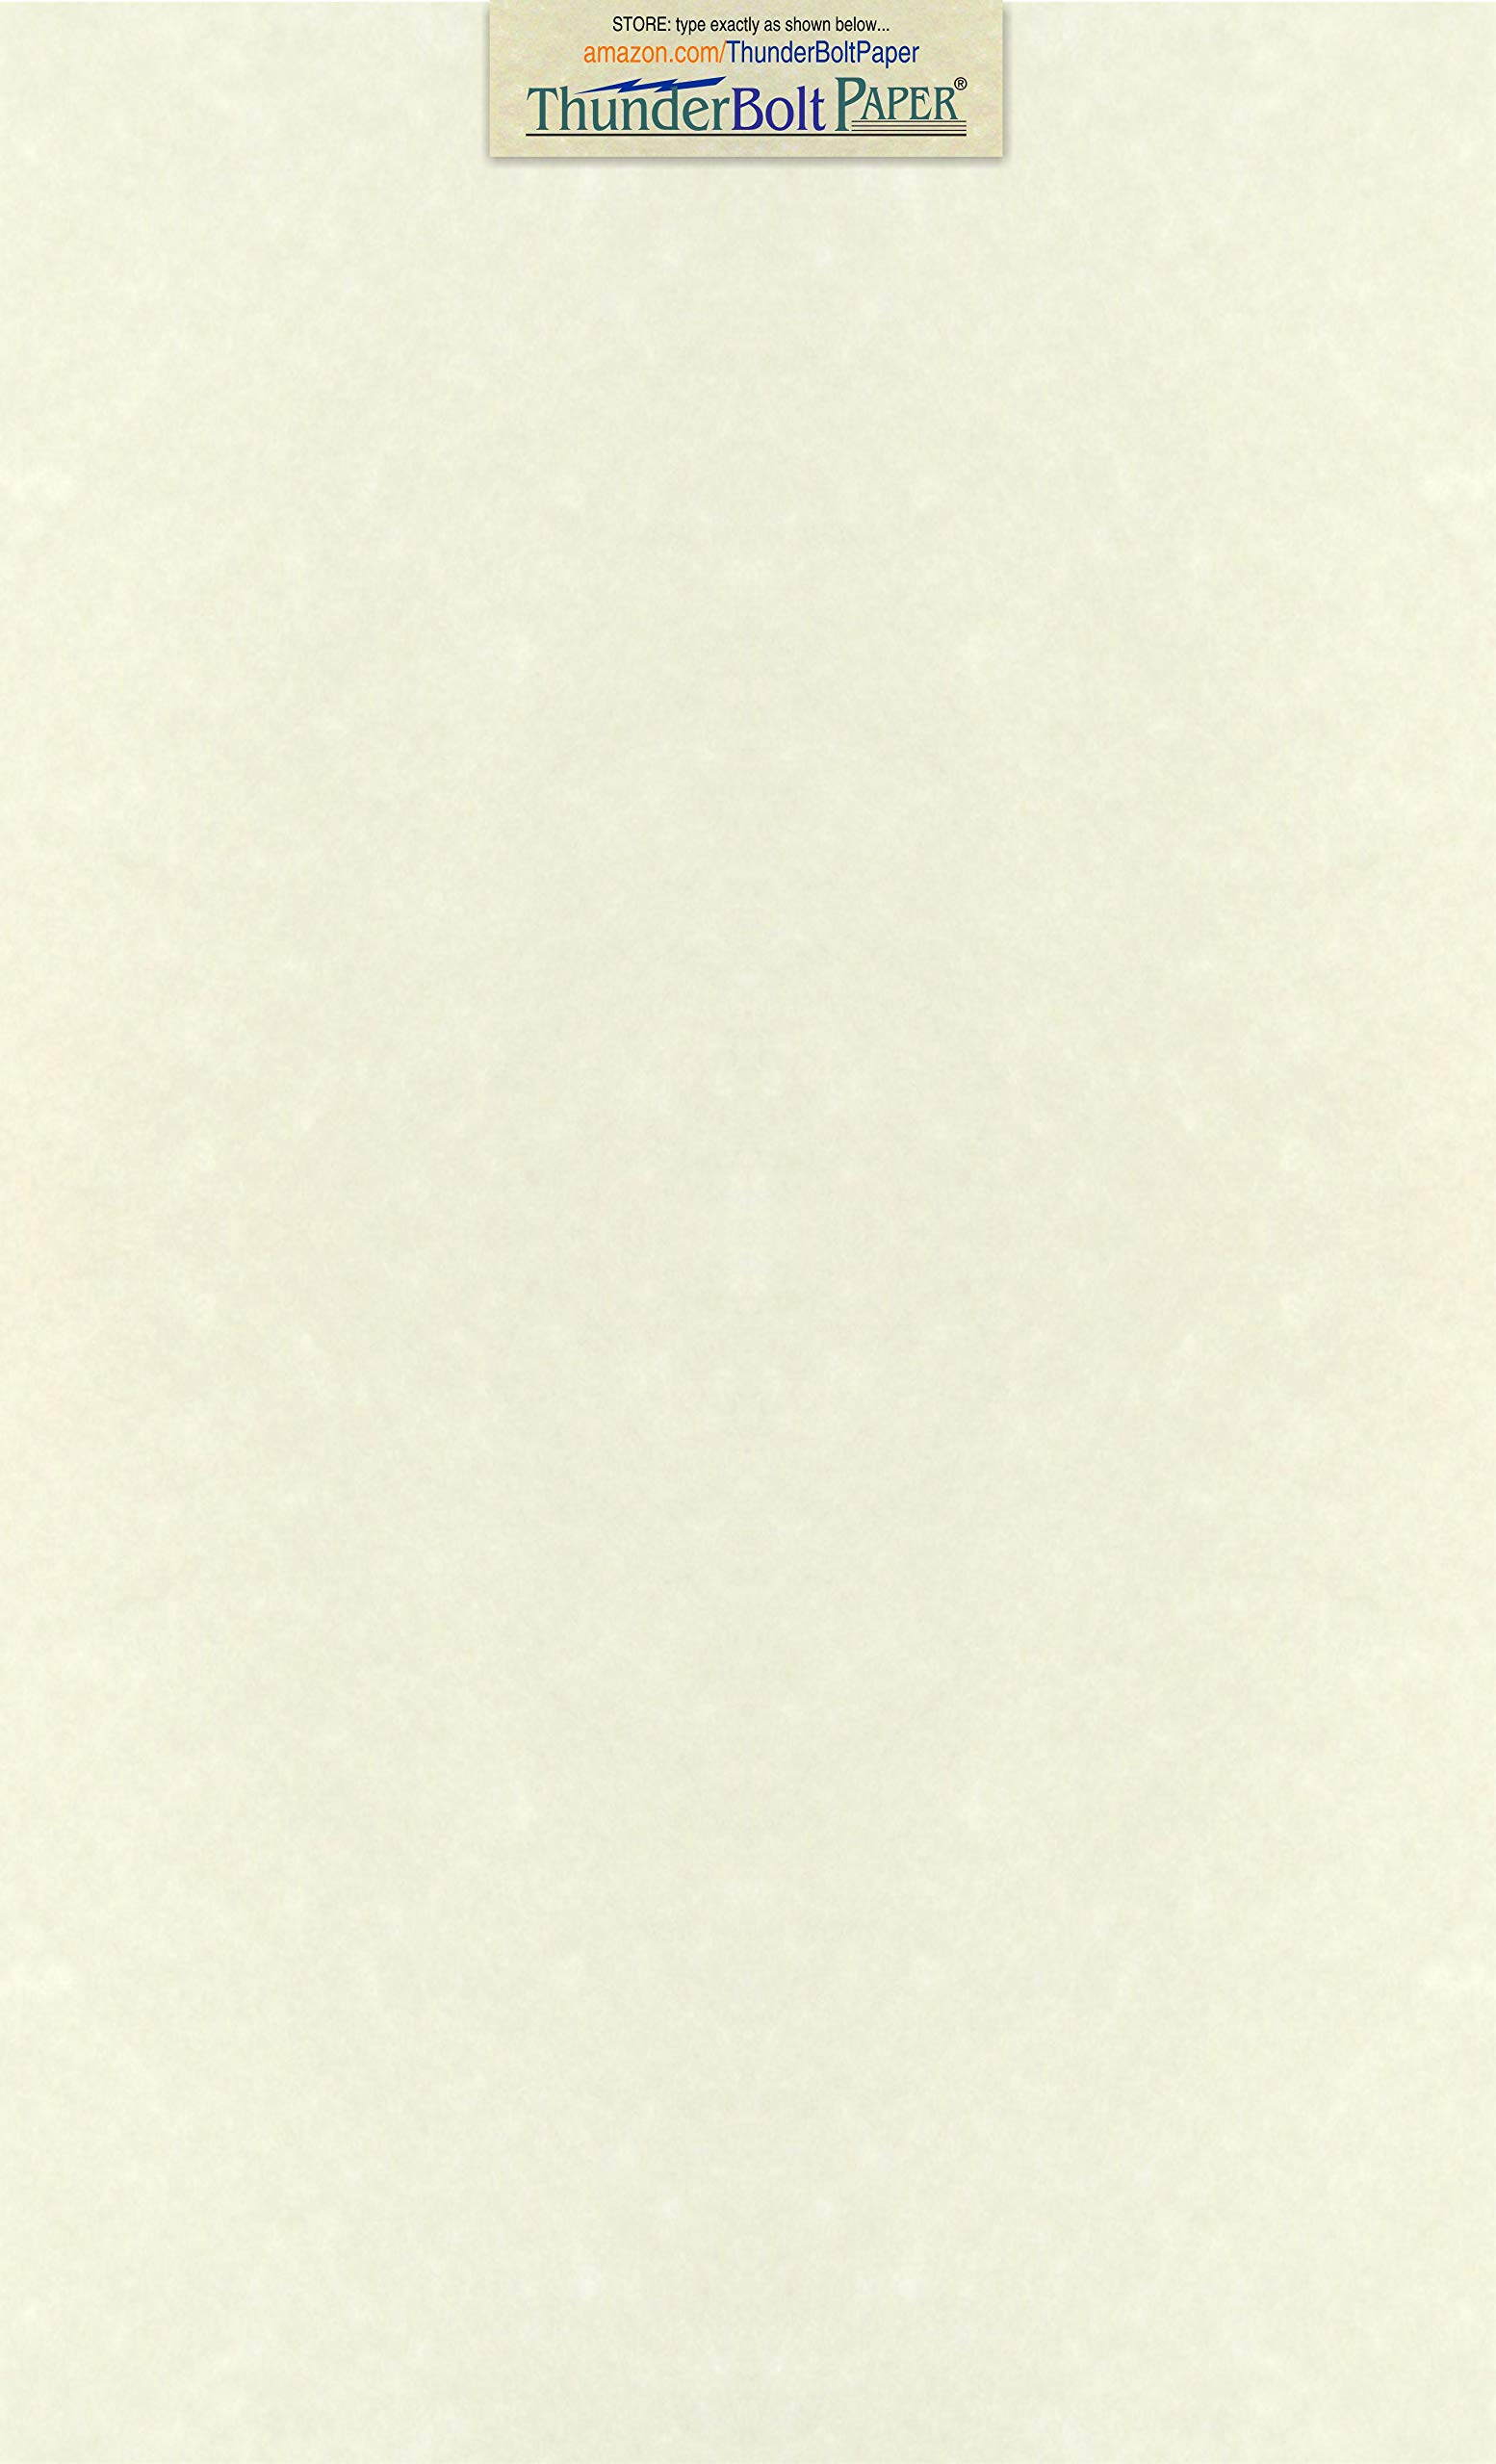 50 Soft White Parchment 60lb Text Weight Paper - 8.5'' X 14'' (8.5X14 Inches) Legal|Menu Size - 60 Pound is Not Card Weight - Vintage Colored Old Parchment Semblance by ThunderBolt Paper